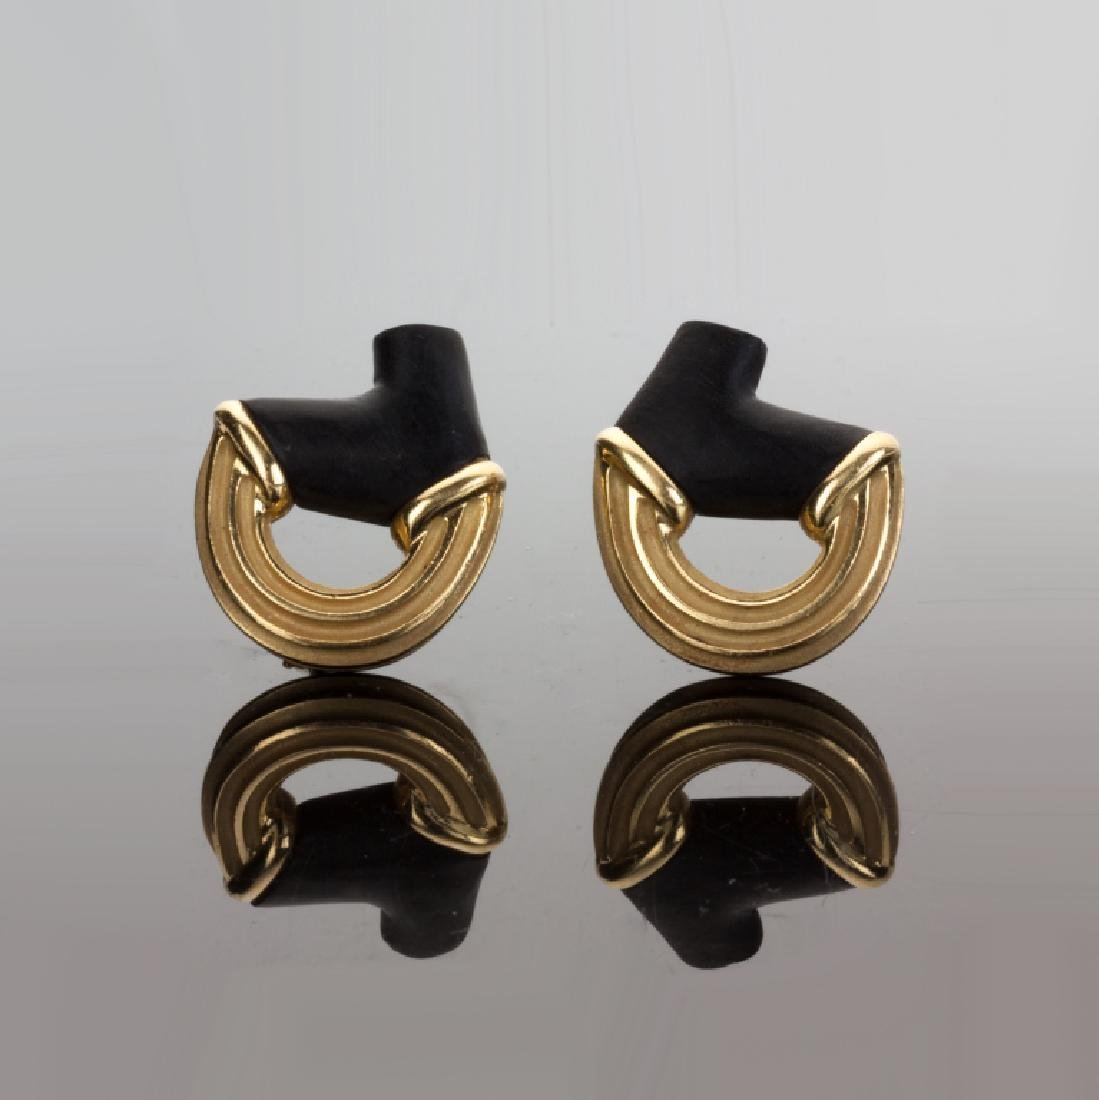 Christopher Walling 18K Gold and Black Coral Earrings